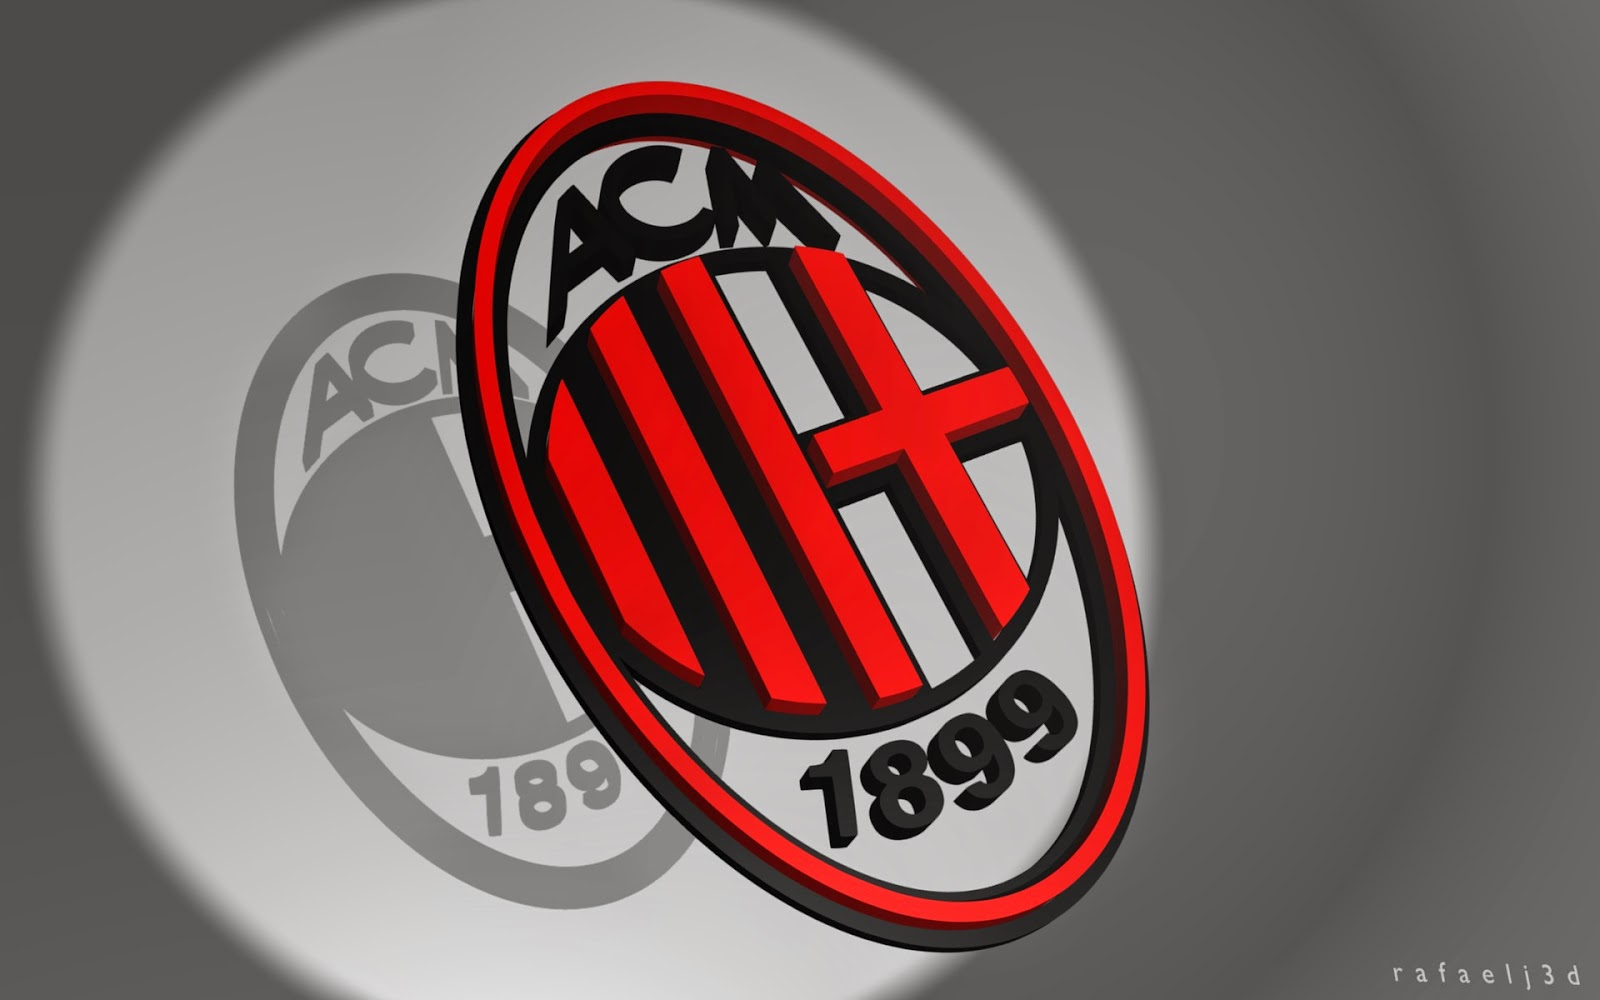 Best 3d Live Wallpaper Android 2015 Soccer Wallpaper Ac Milan Football Club Wallpaper